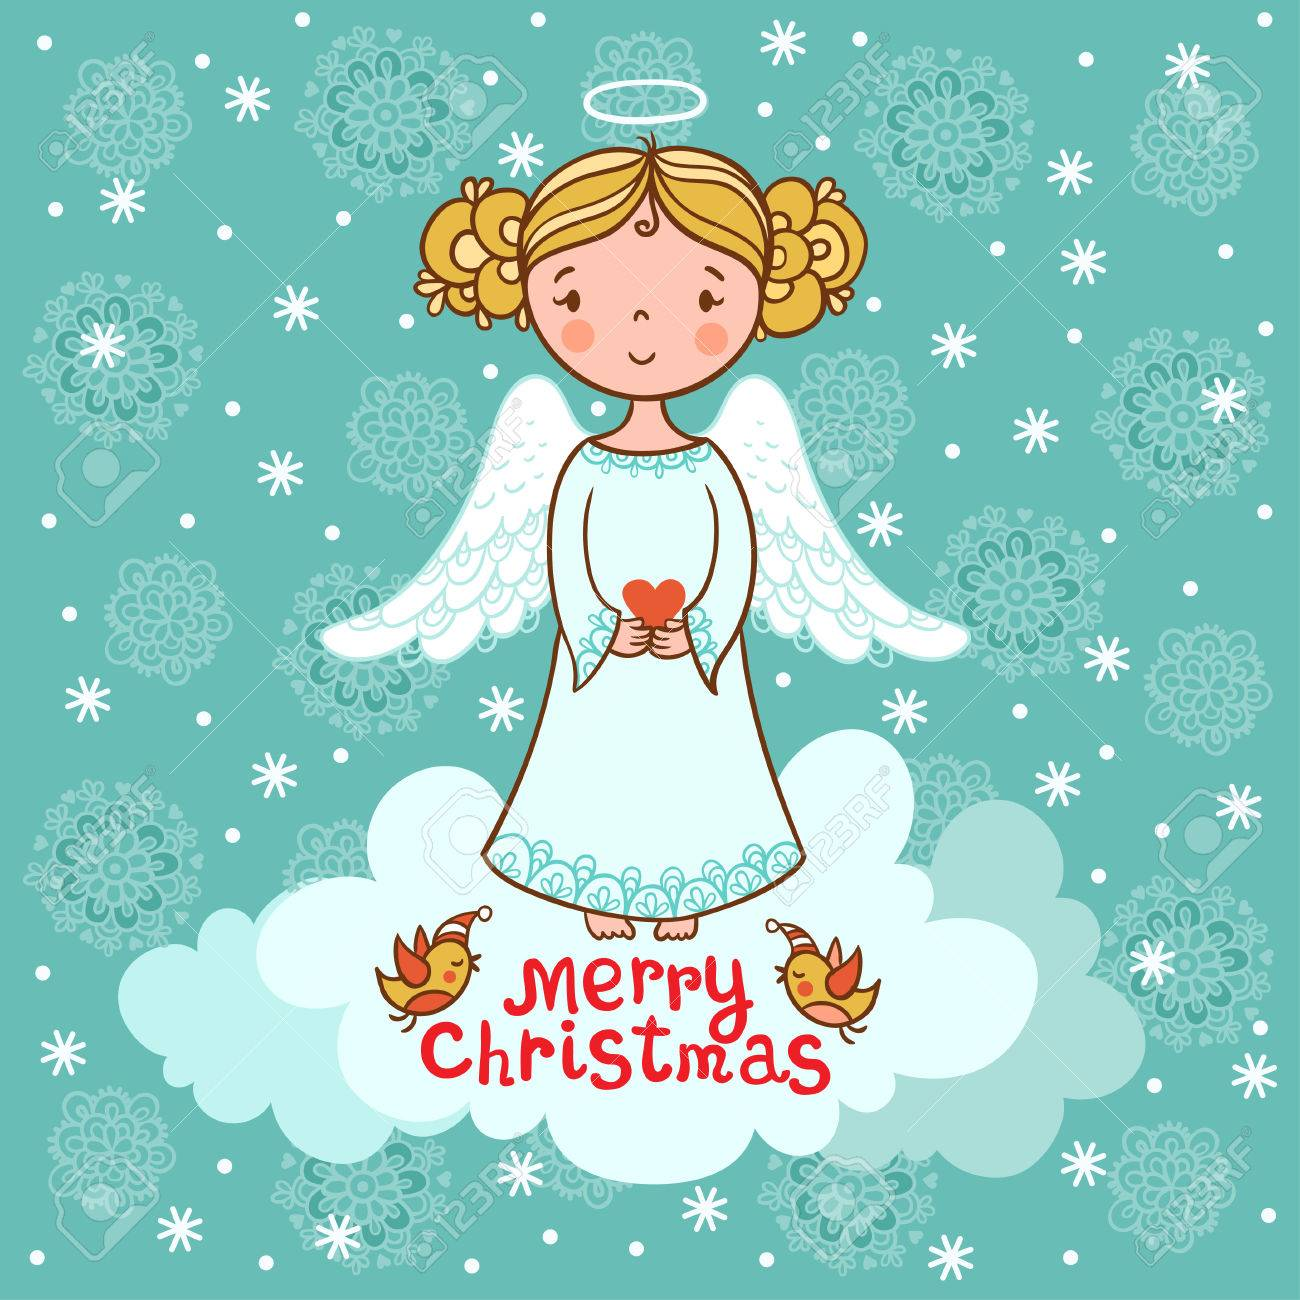 Christmas vector illustration on the theme of the new year. - 46448927